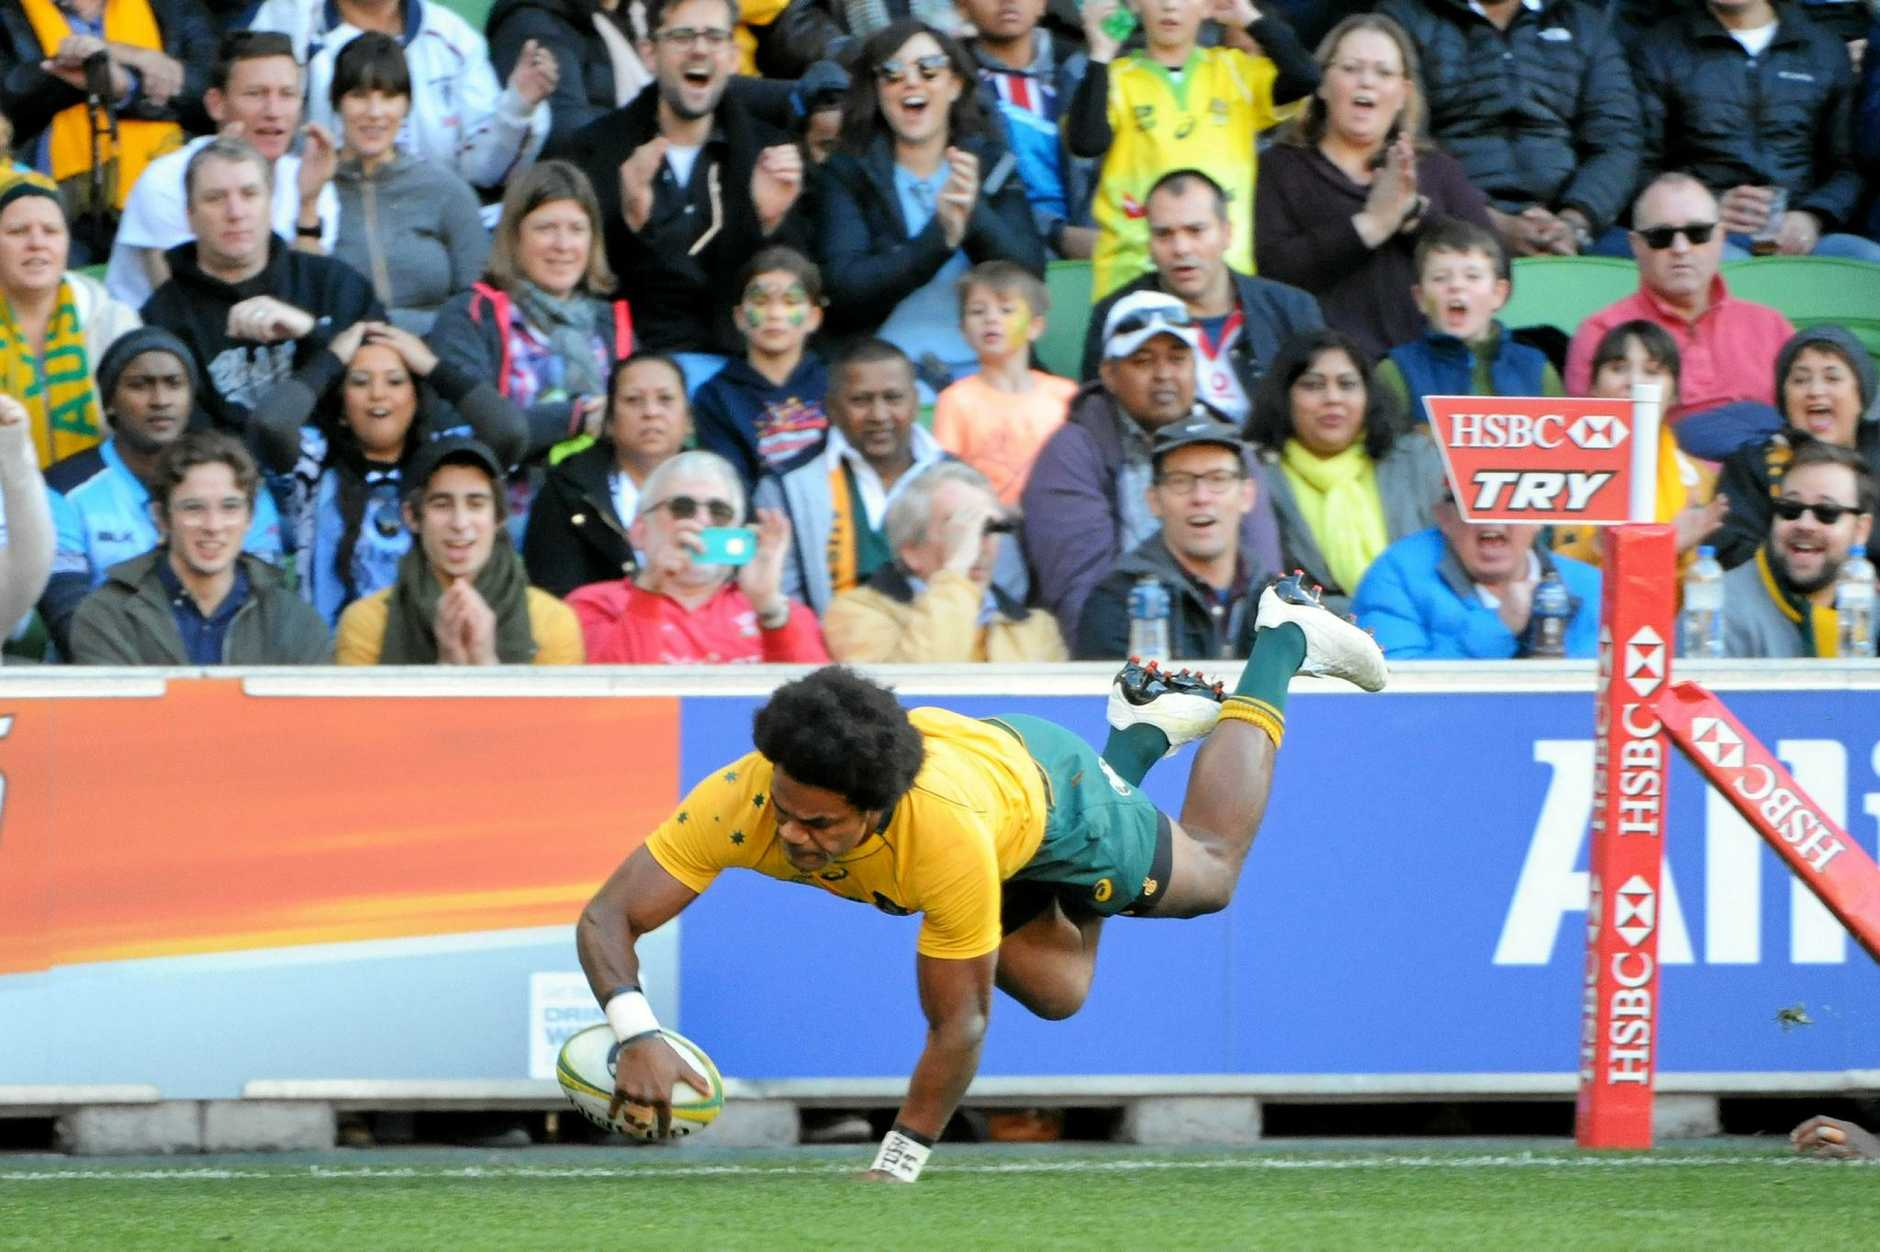 Henry Speight of the Wallabies dives to score the side's second try, during an international test match between the Wallabies and Fiji, played at AAMI stadium in Melbourne, Saturday, June 10, 2017.(AAP Image/Joe Castro) NO ARCHIVING, EDITORIAL USE ONLY